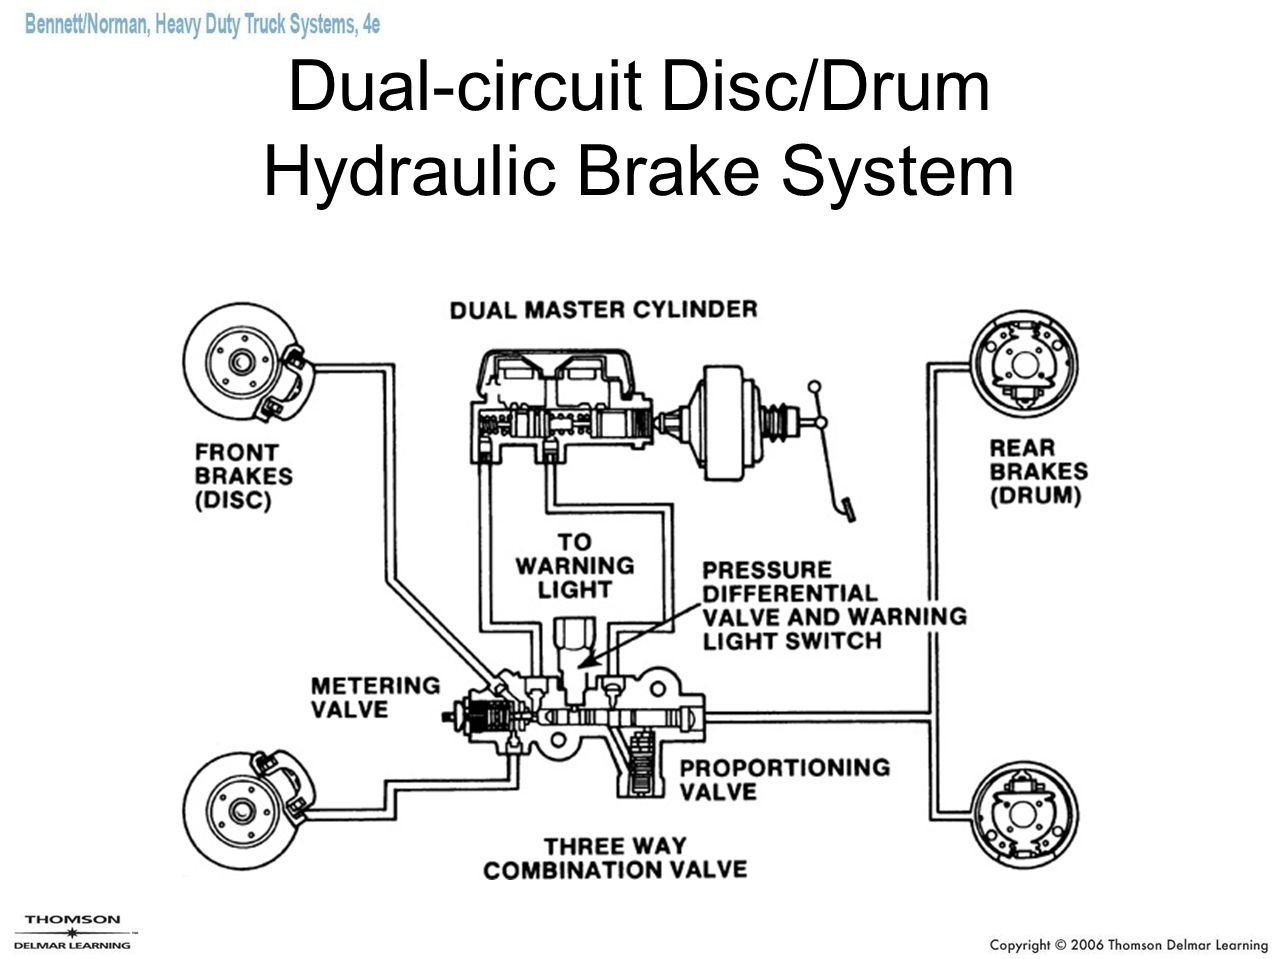 Line Diagram Of Hydraulic Brake System Periodic